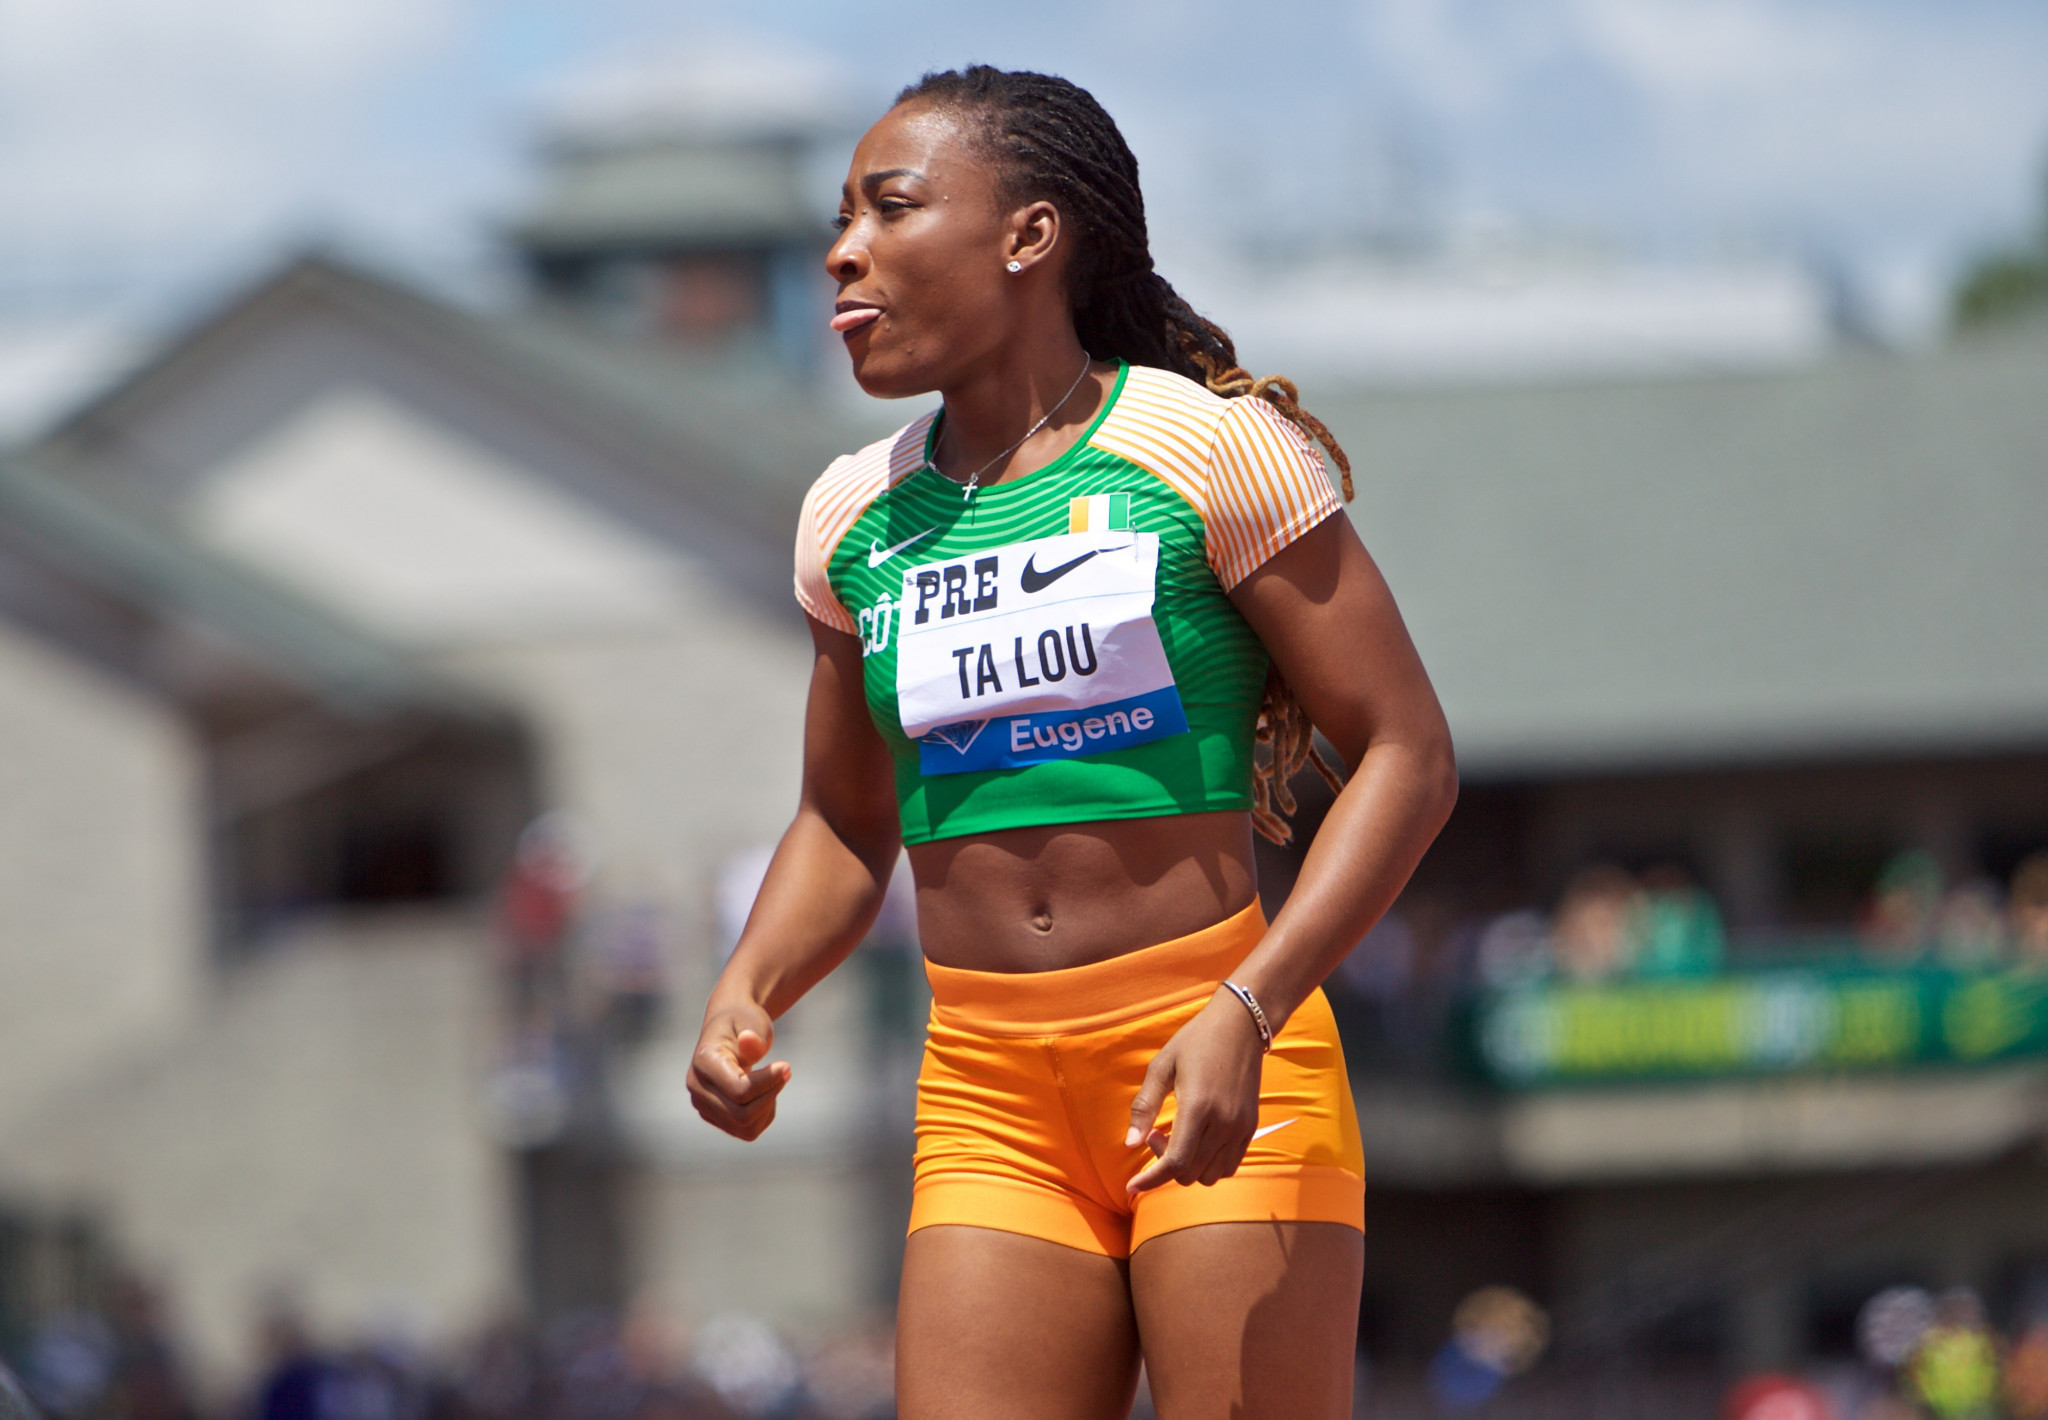 Ivory Coast's Marie-Josee Ta Lou won the women's 100m at the IAAF Diamond League in Eugene, Oregon ©Getty Images